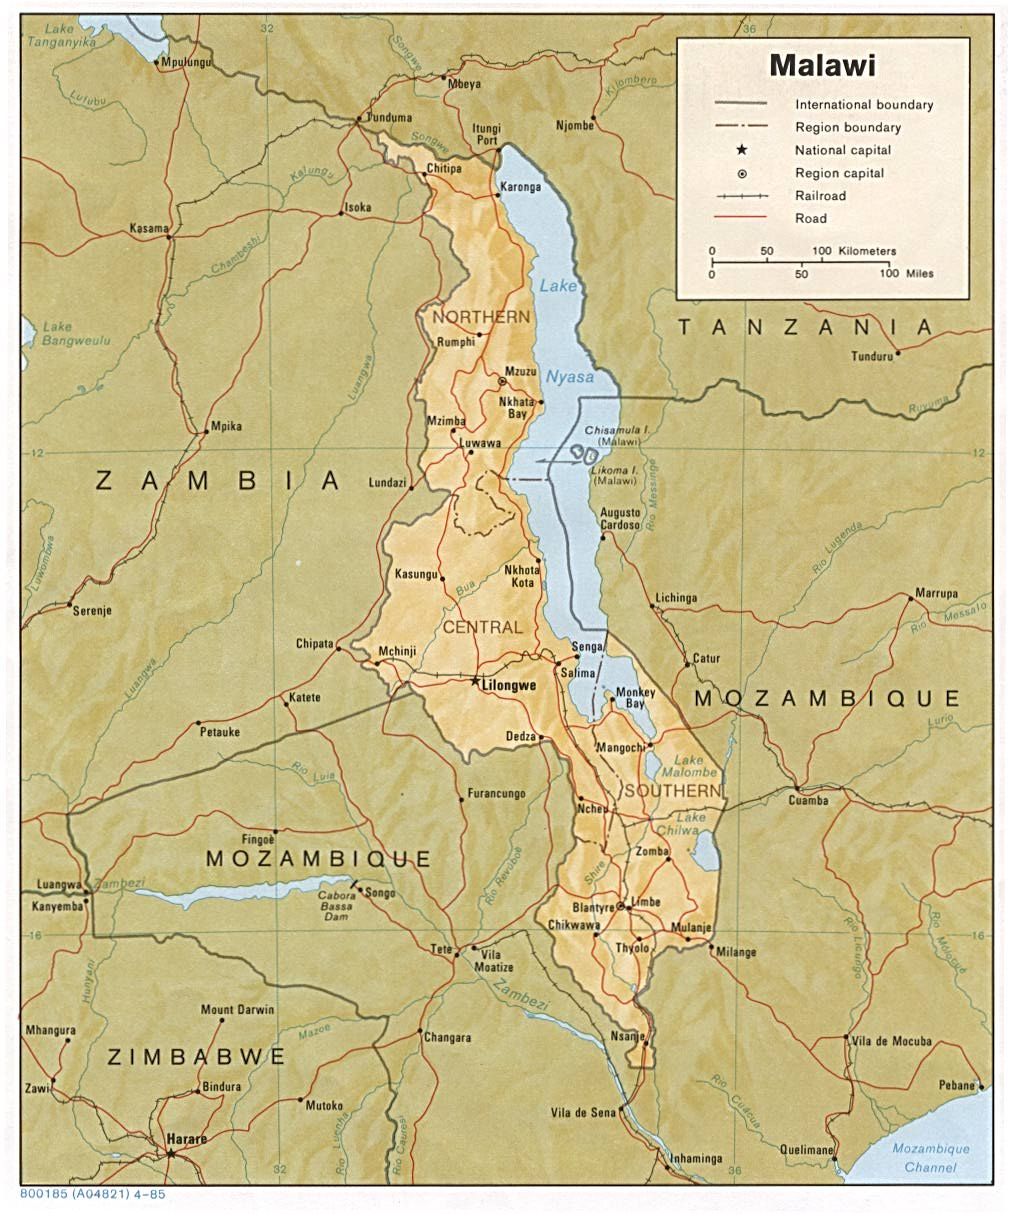 Malawi On Africa Map.Malawi Maps Perry Castaneda Map Collection Ut Library Online